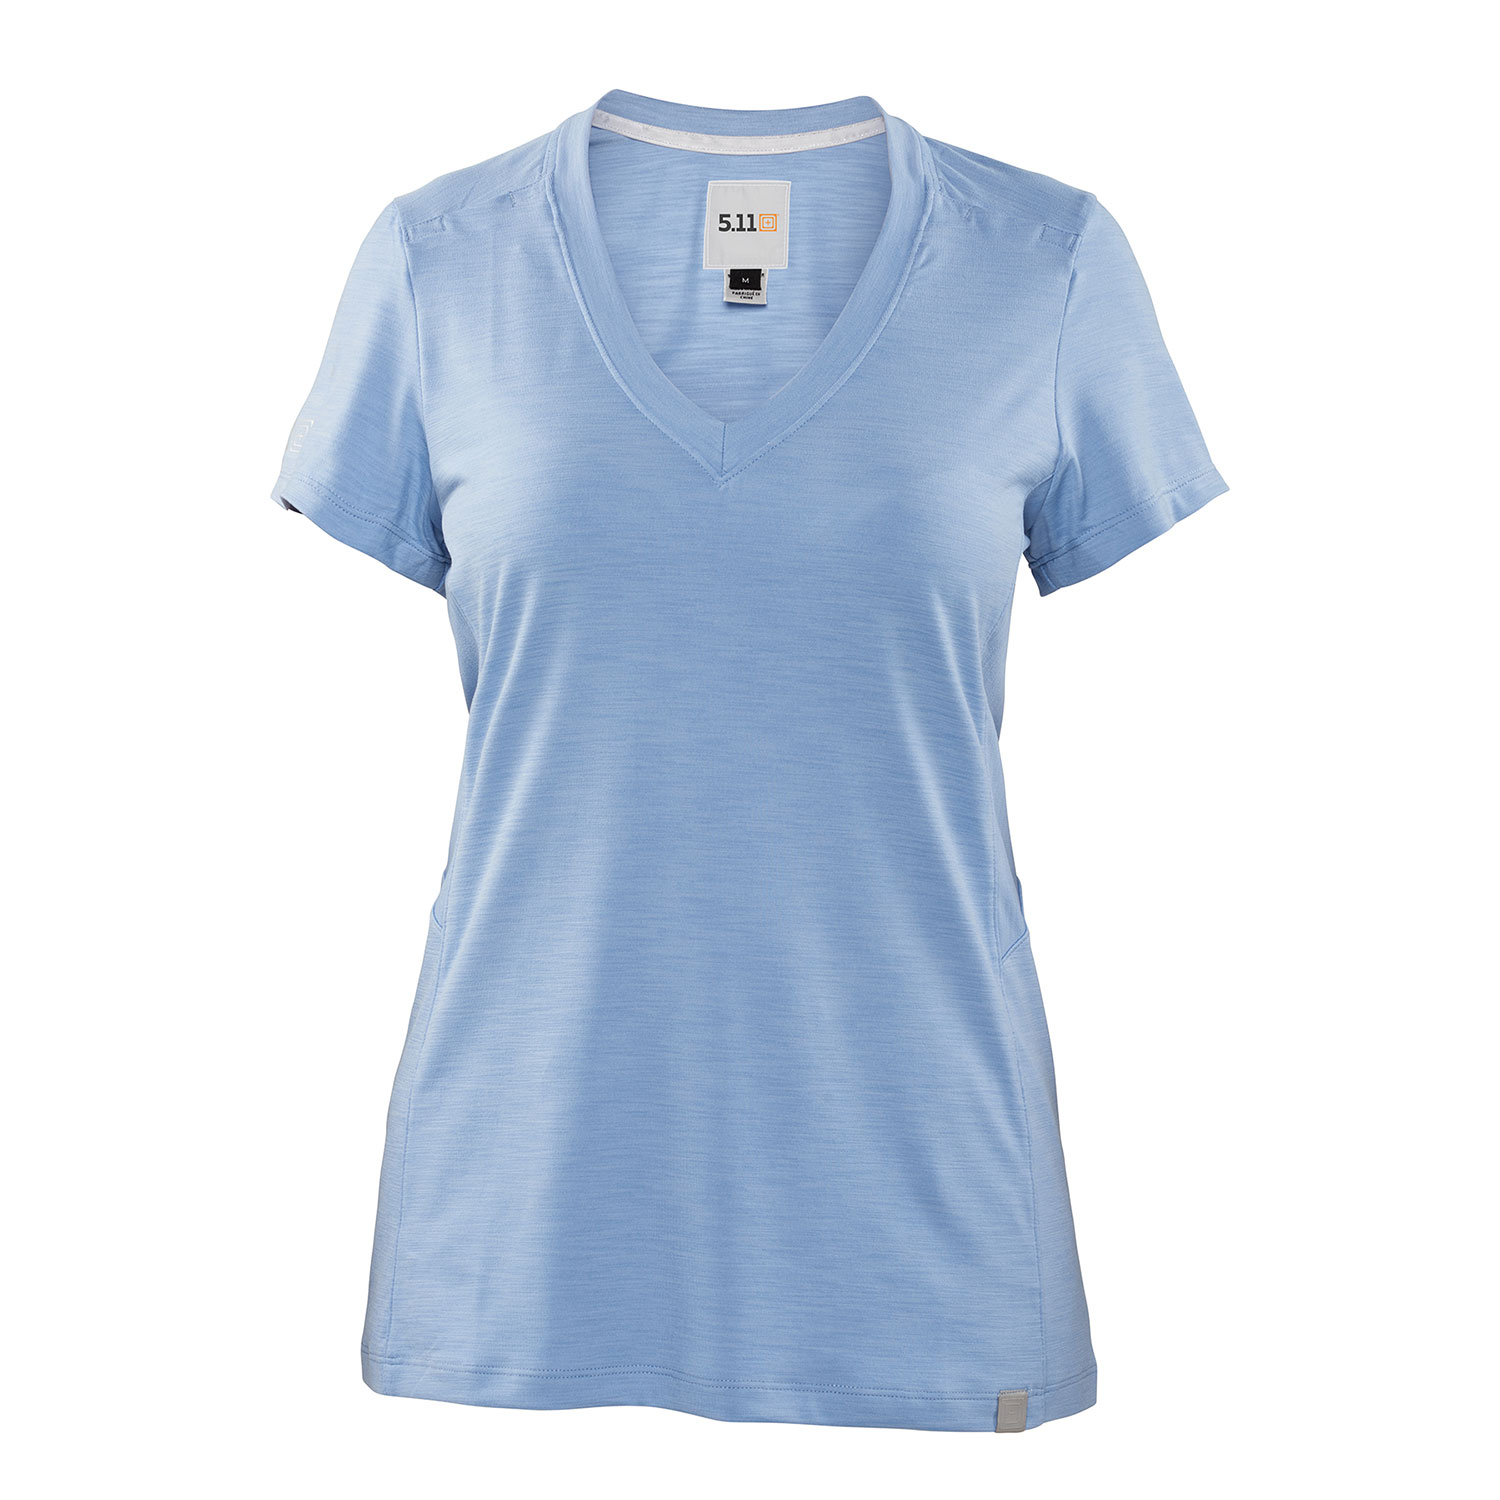 5.11 Tactical Women's Zig Zag V-Neck